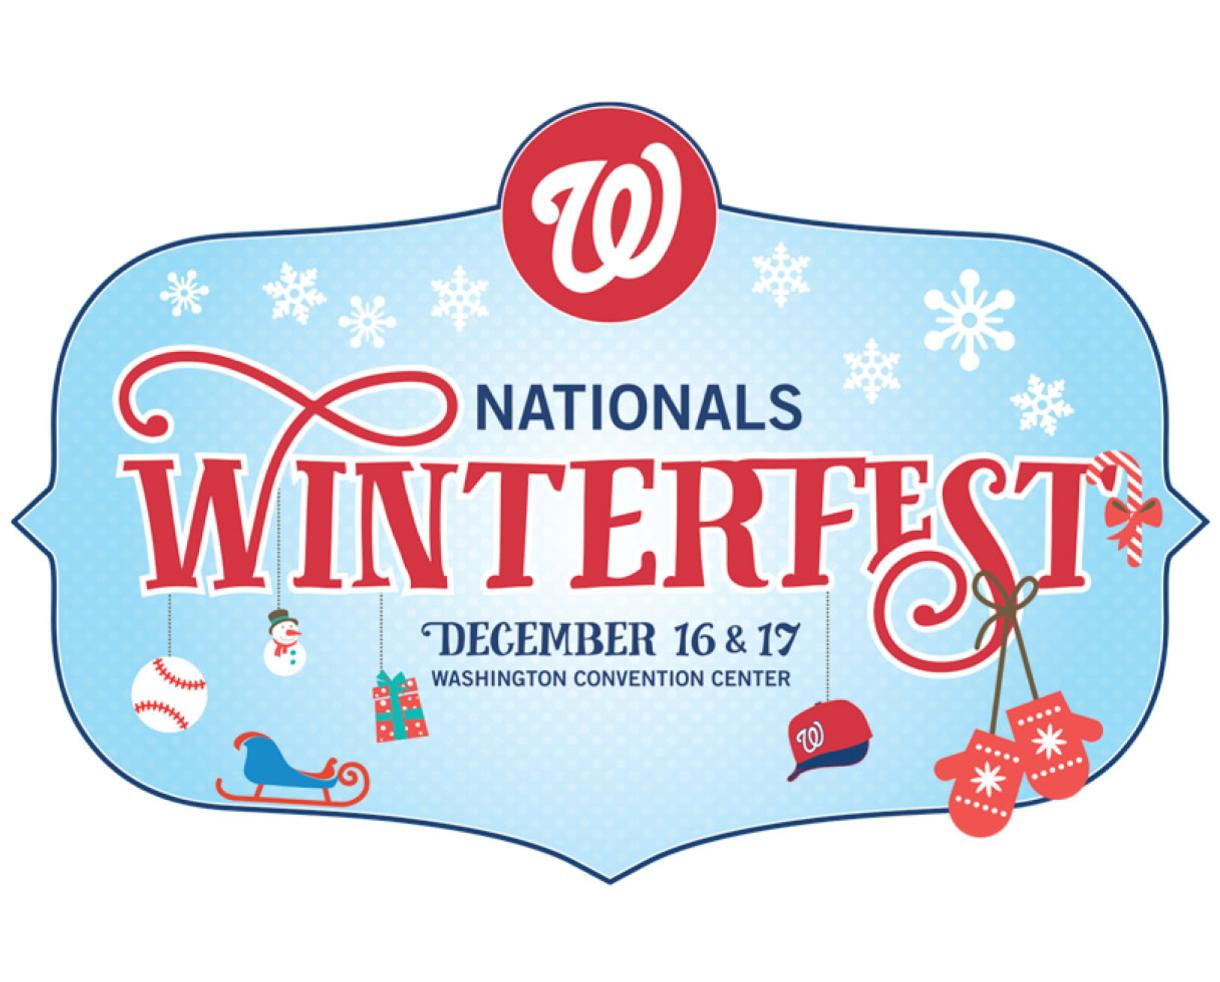 $21+ for Admission to Nationals Winterfest December 16th & 17th at the Convention Center in DC